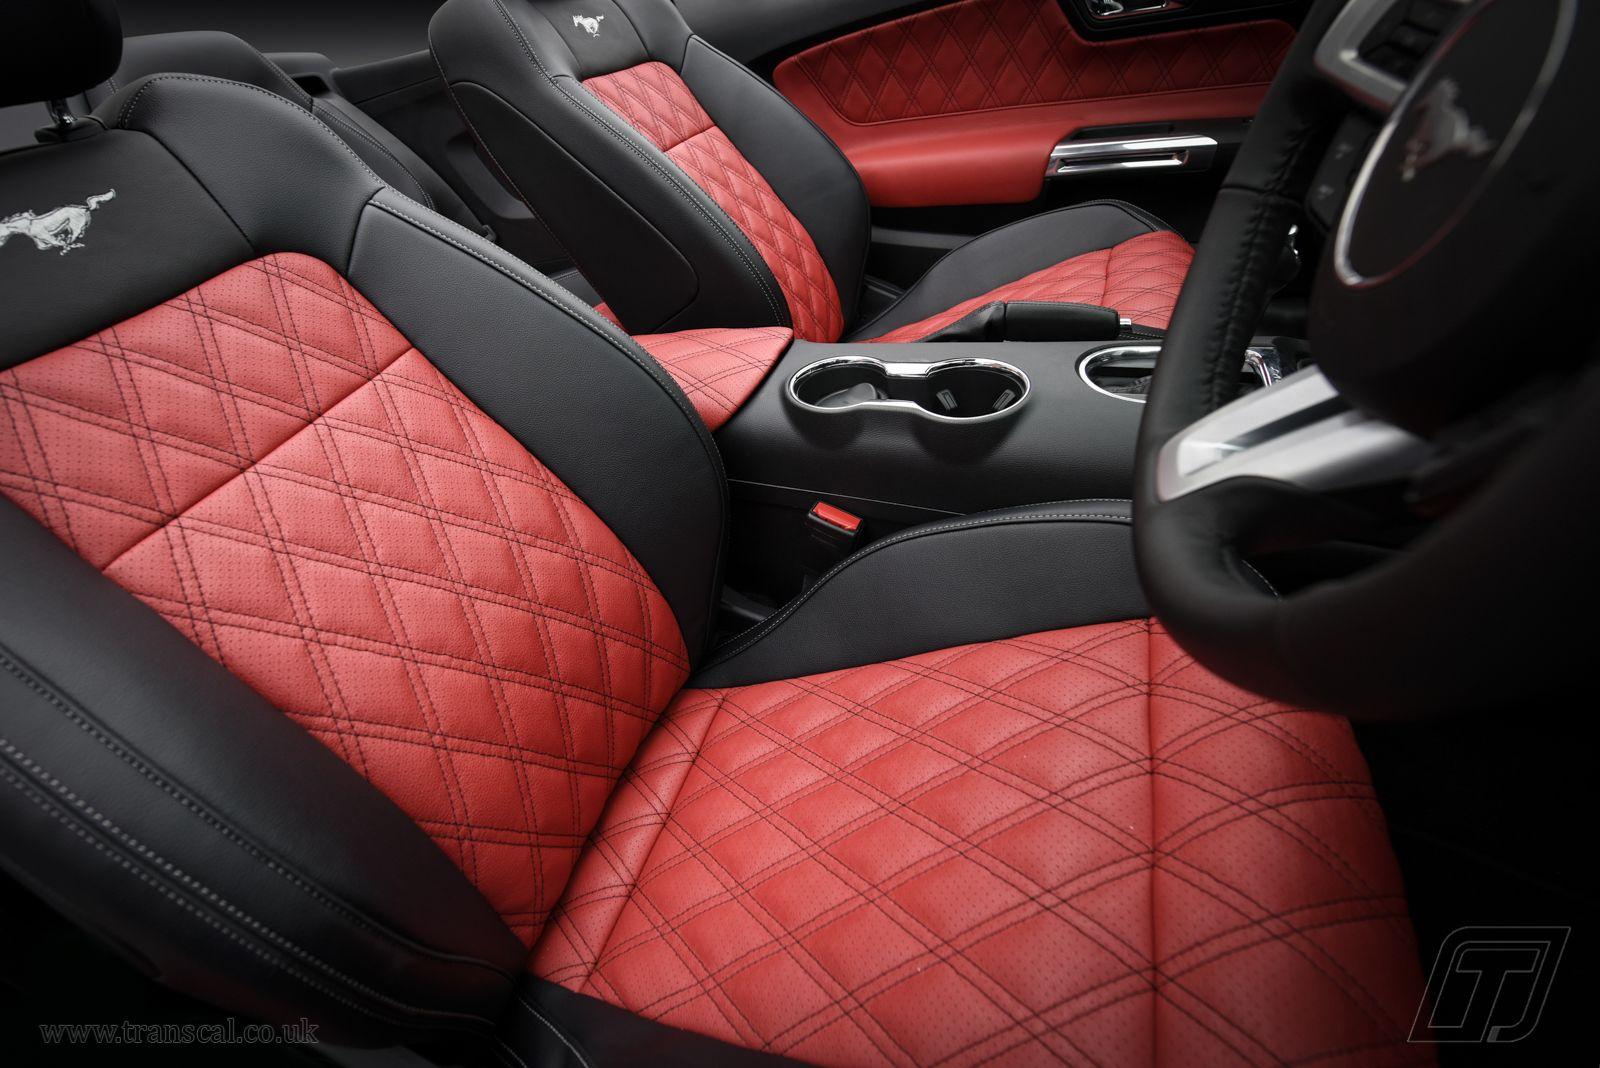 Ford Mustang Leather Interior Bespoke Cars Truck Interior Car Interior